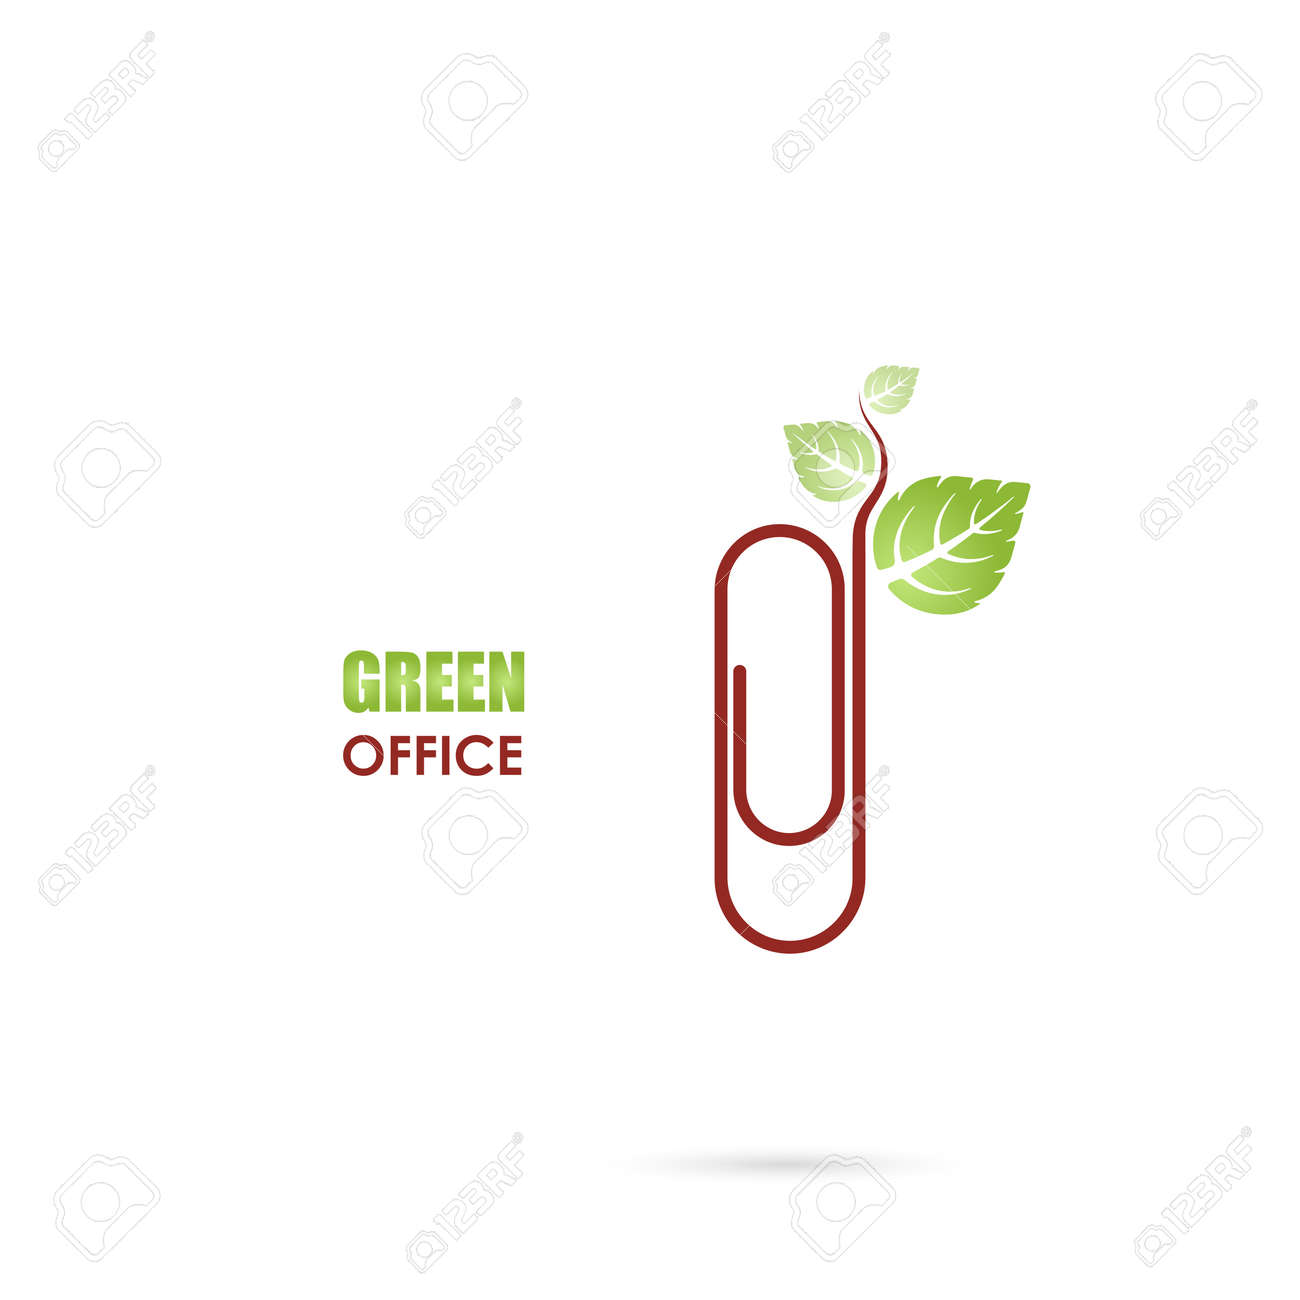 Office Sign Template from previews.123rf.com